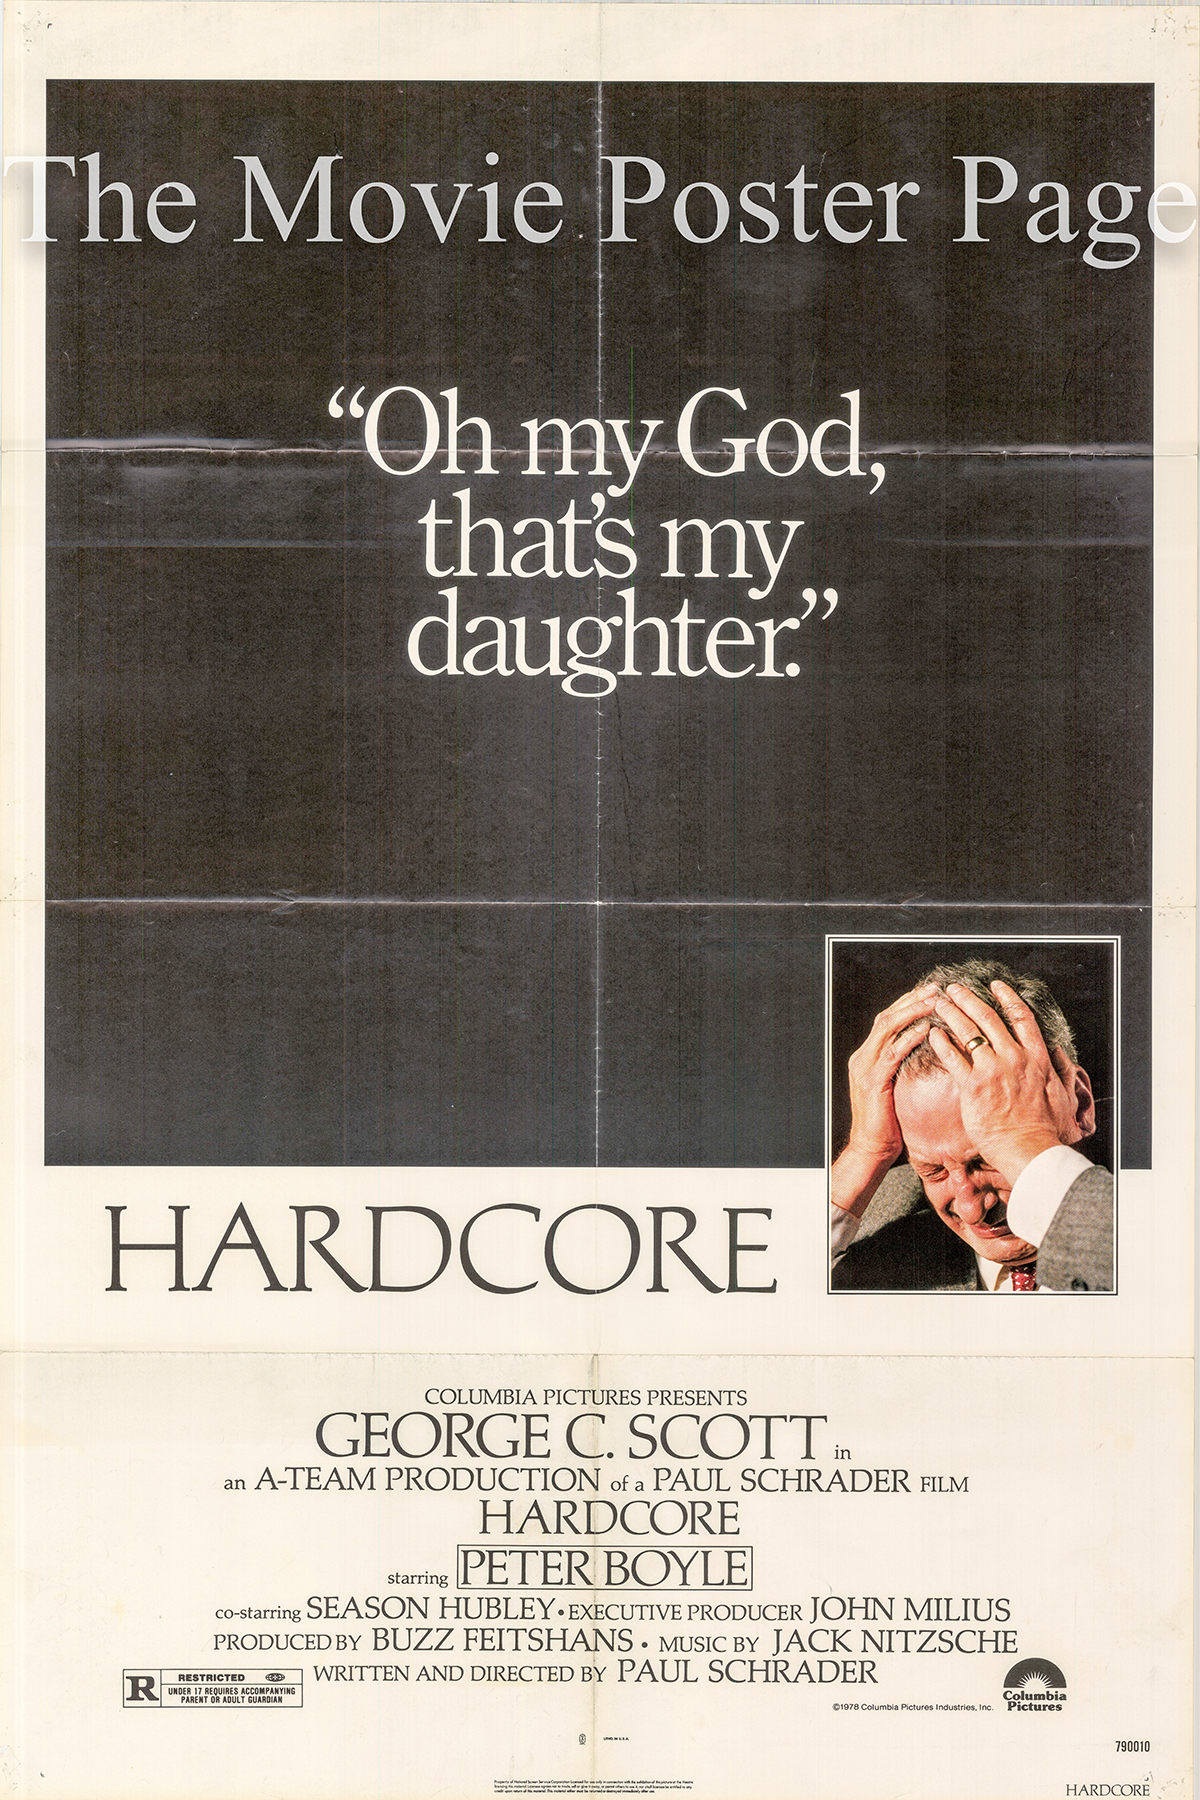 Pictured is a US one-sheet promotional poster for the 1979 Paul Schrader film Hardcore starring George C. Scott.